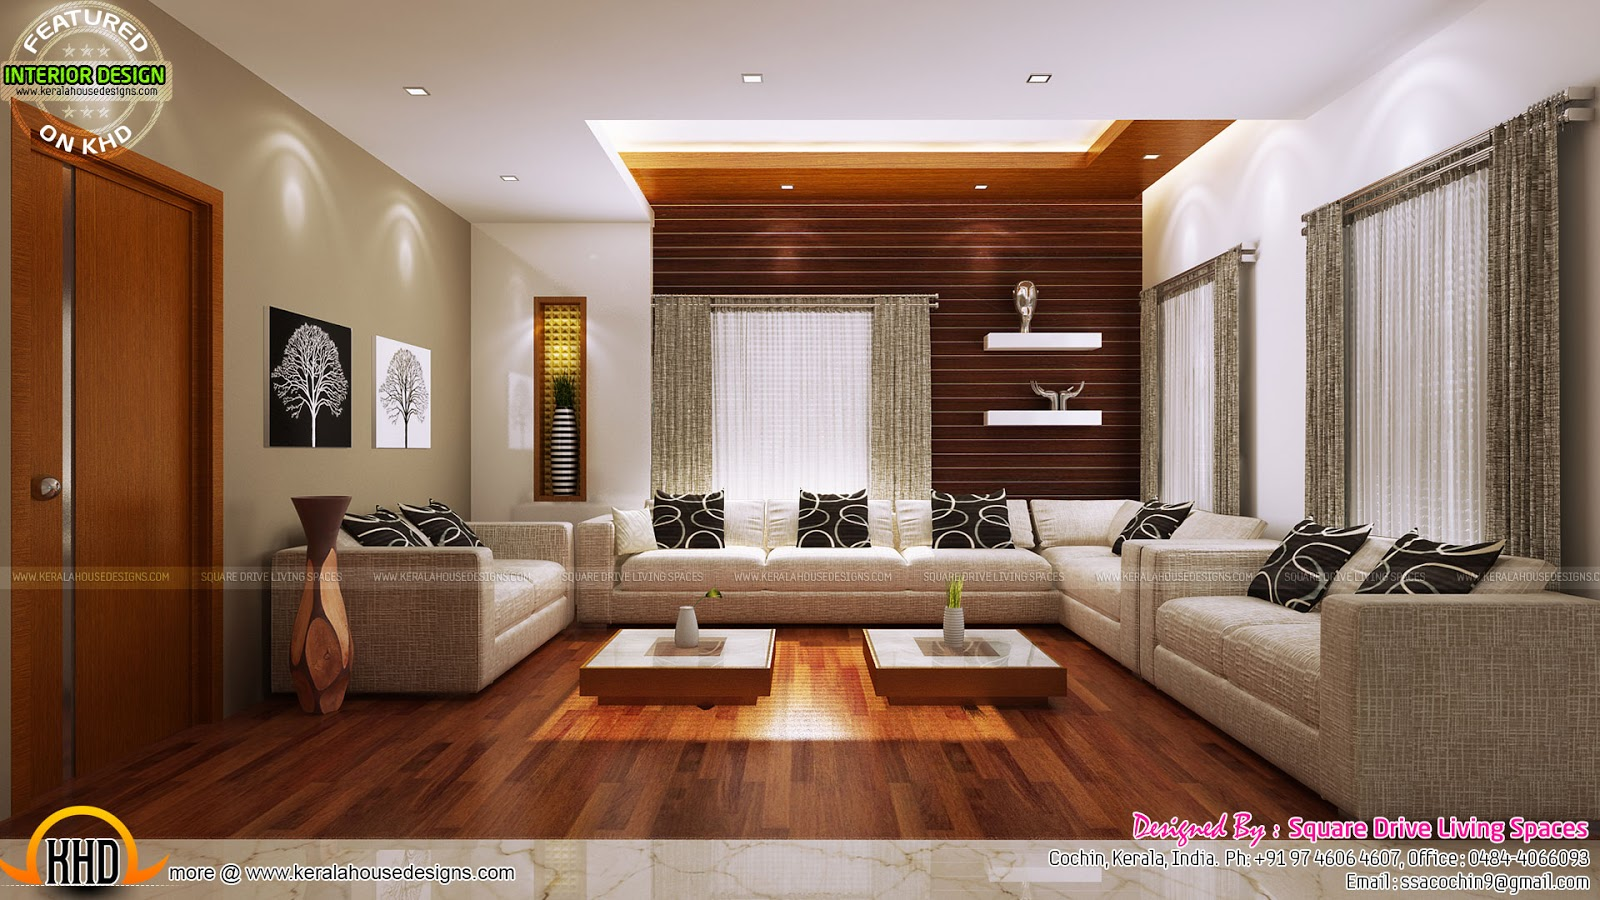 Excellent kerala interior design kerala home design and for Home room design photos